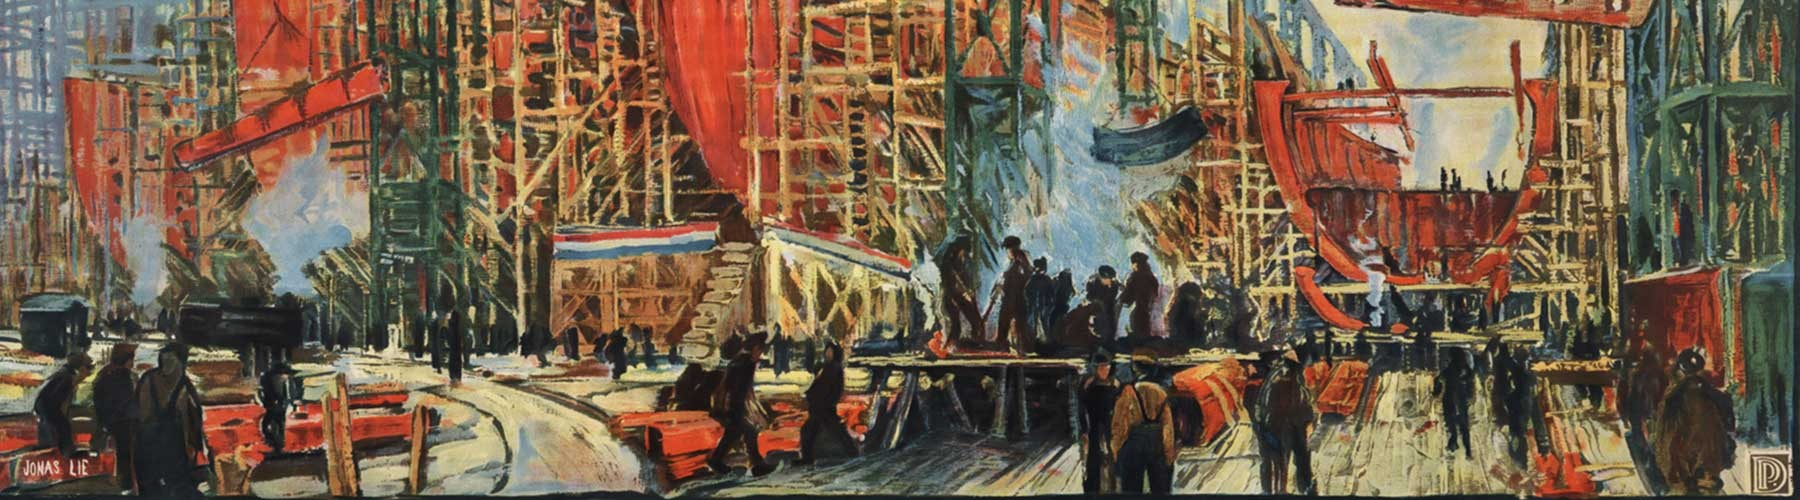 Oil painting called On The Job For Victory, ca. 1918, by Jonas Lie